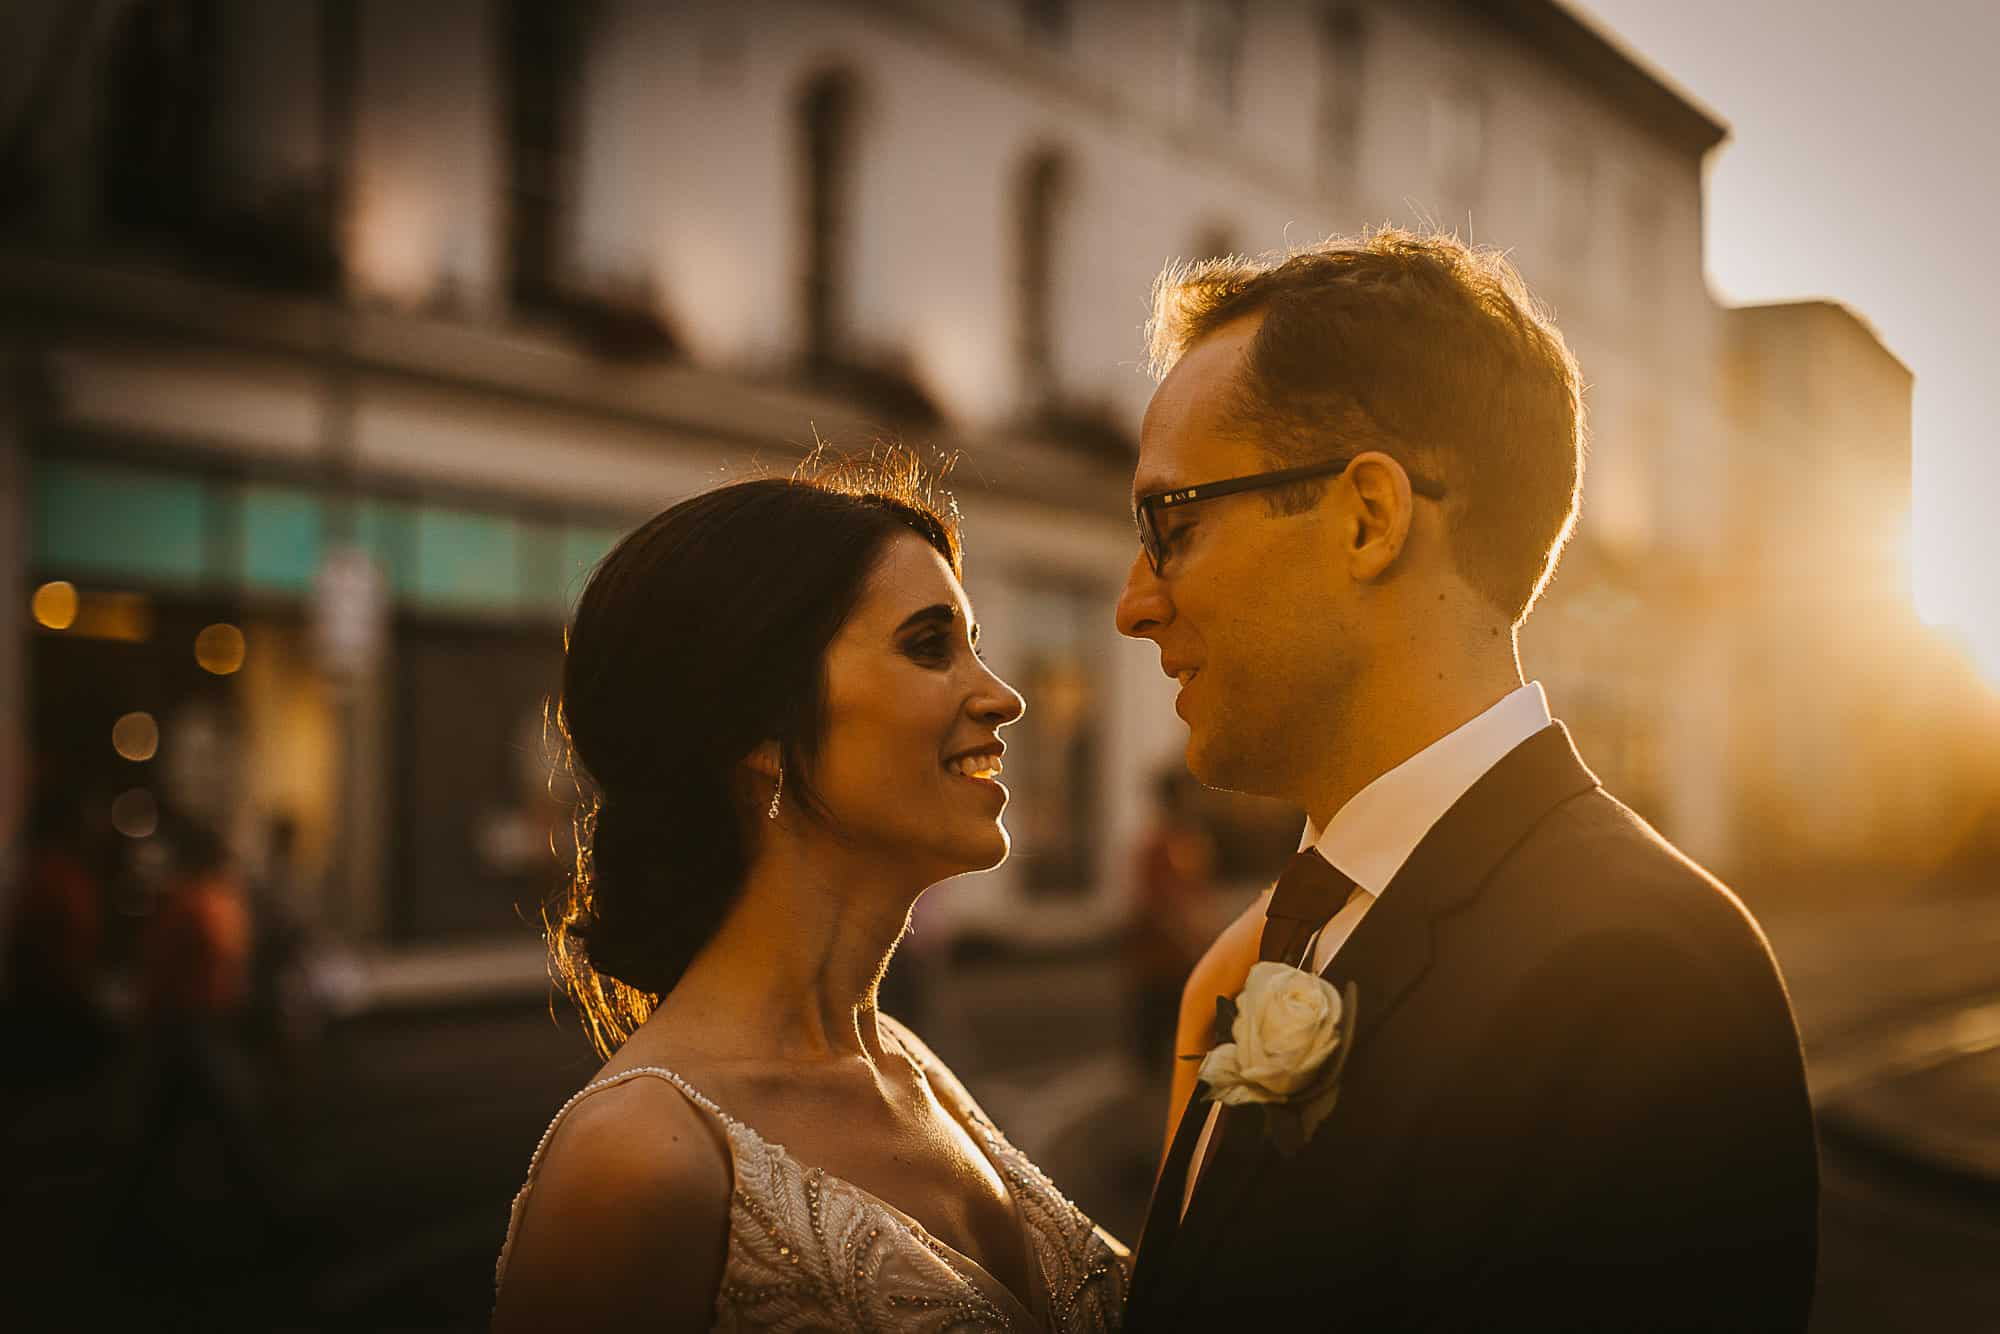 Galway City Elopement Fun, A COULPE AT SUNSET on the streets of Galway arranged by their wedding planner in Ireland